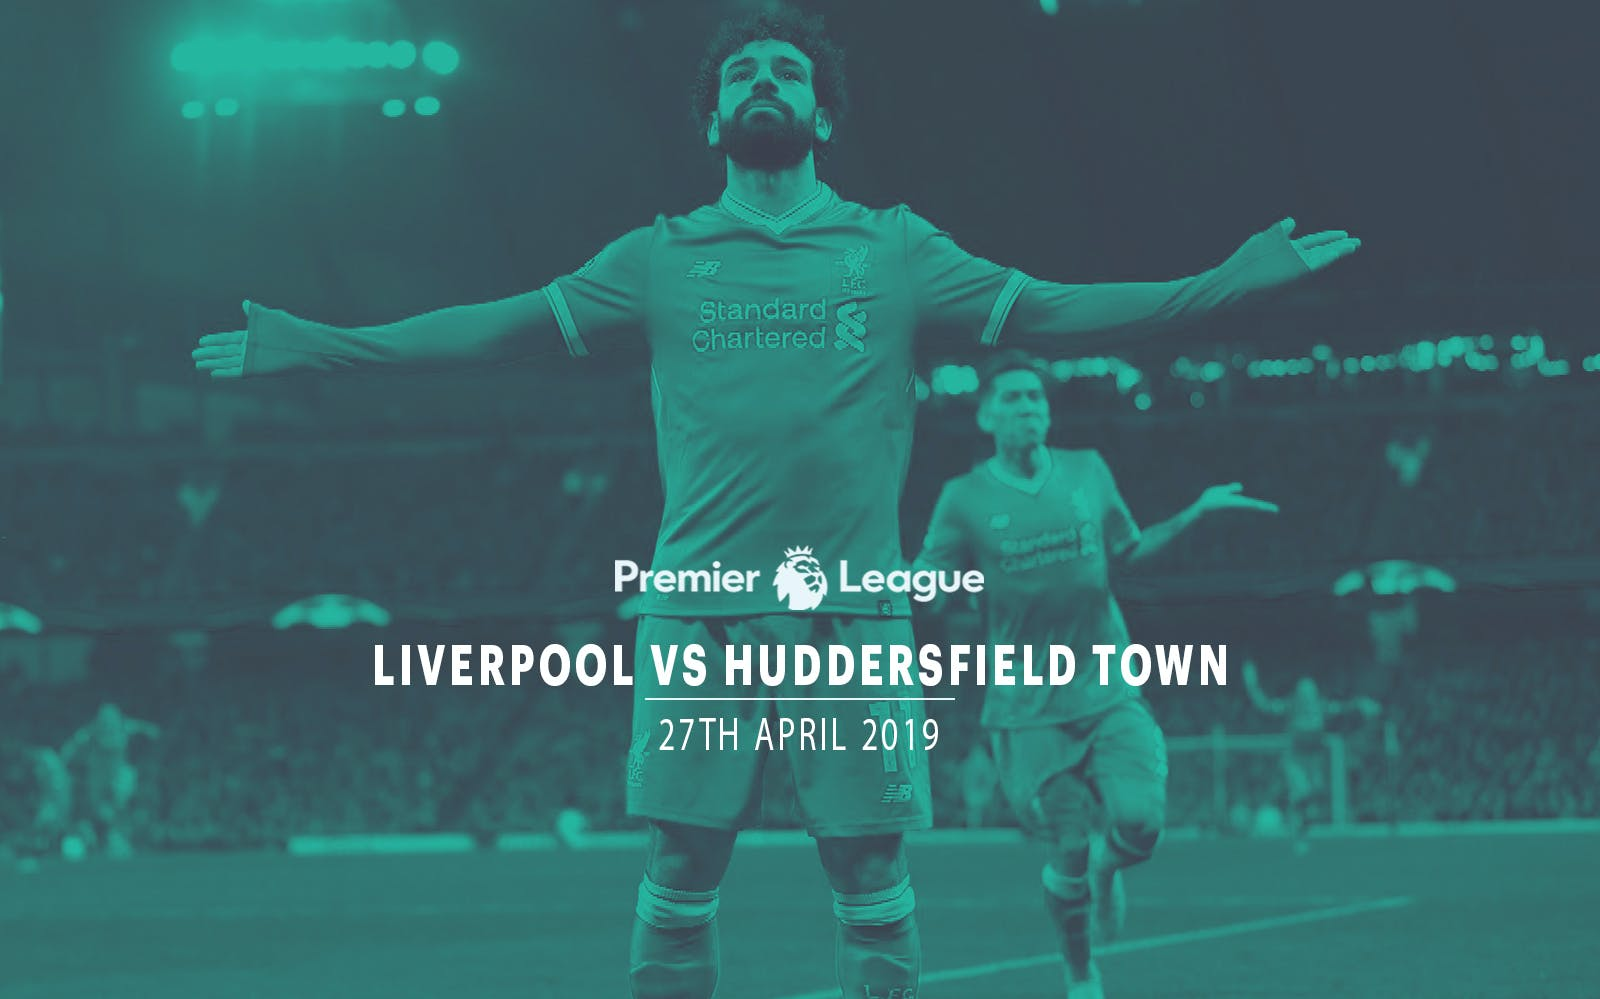 Liverpool vs Huddersfield Town - 27th Apr'19